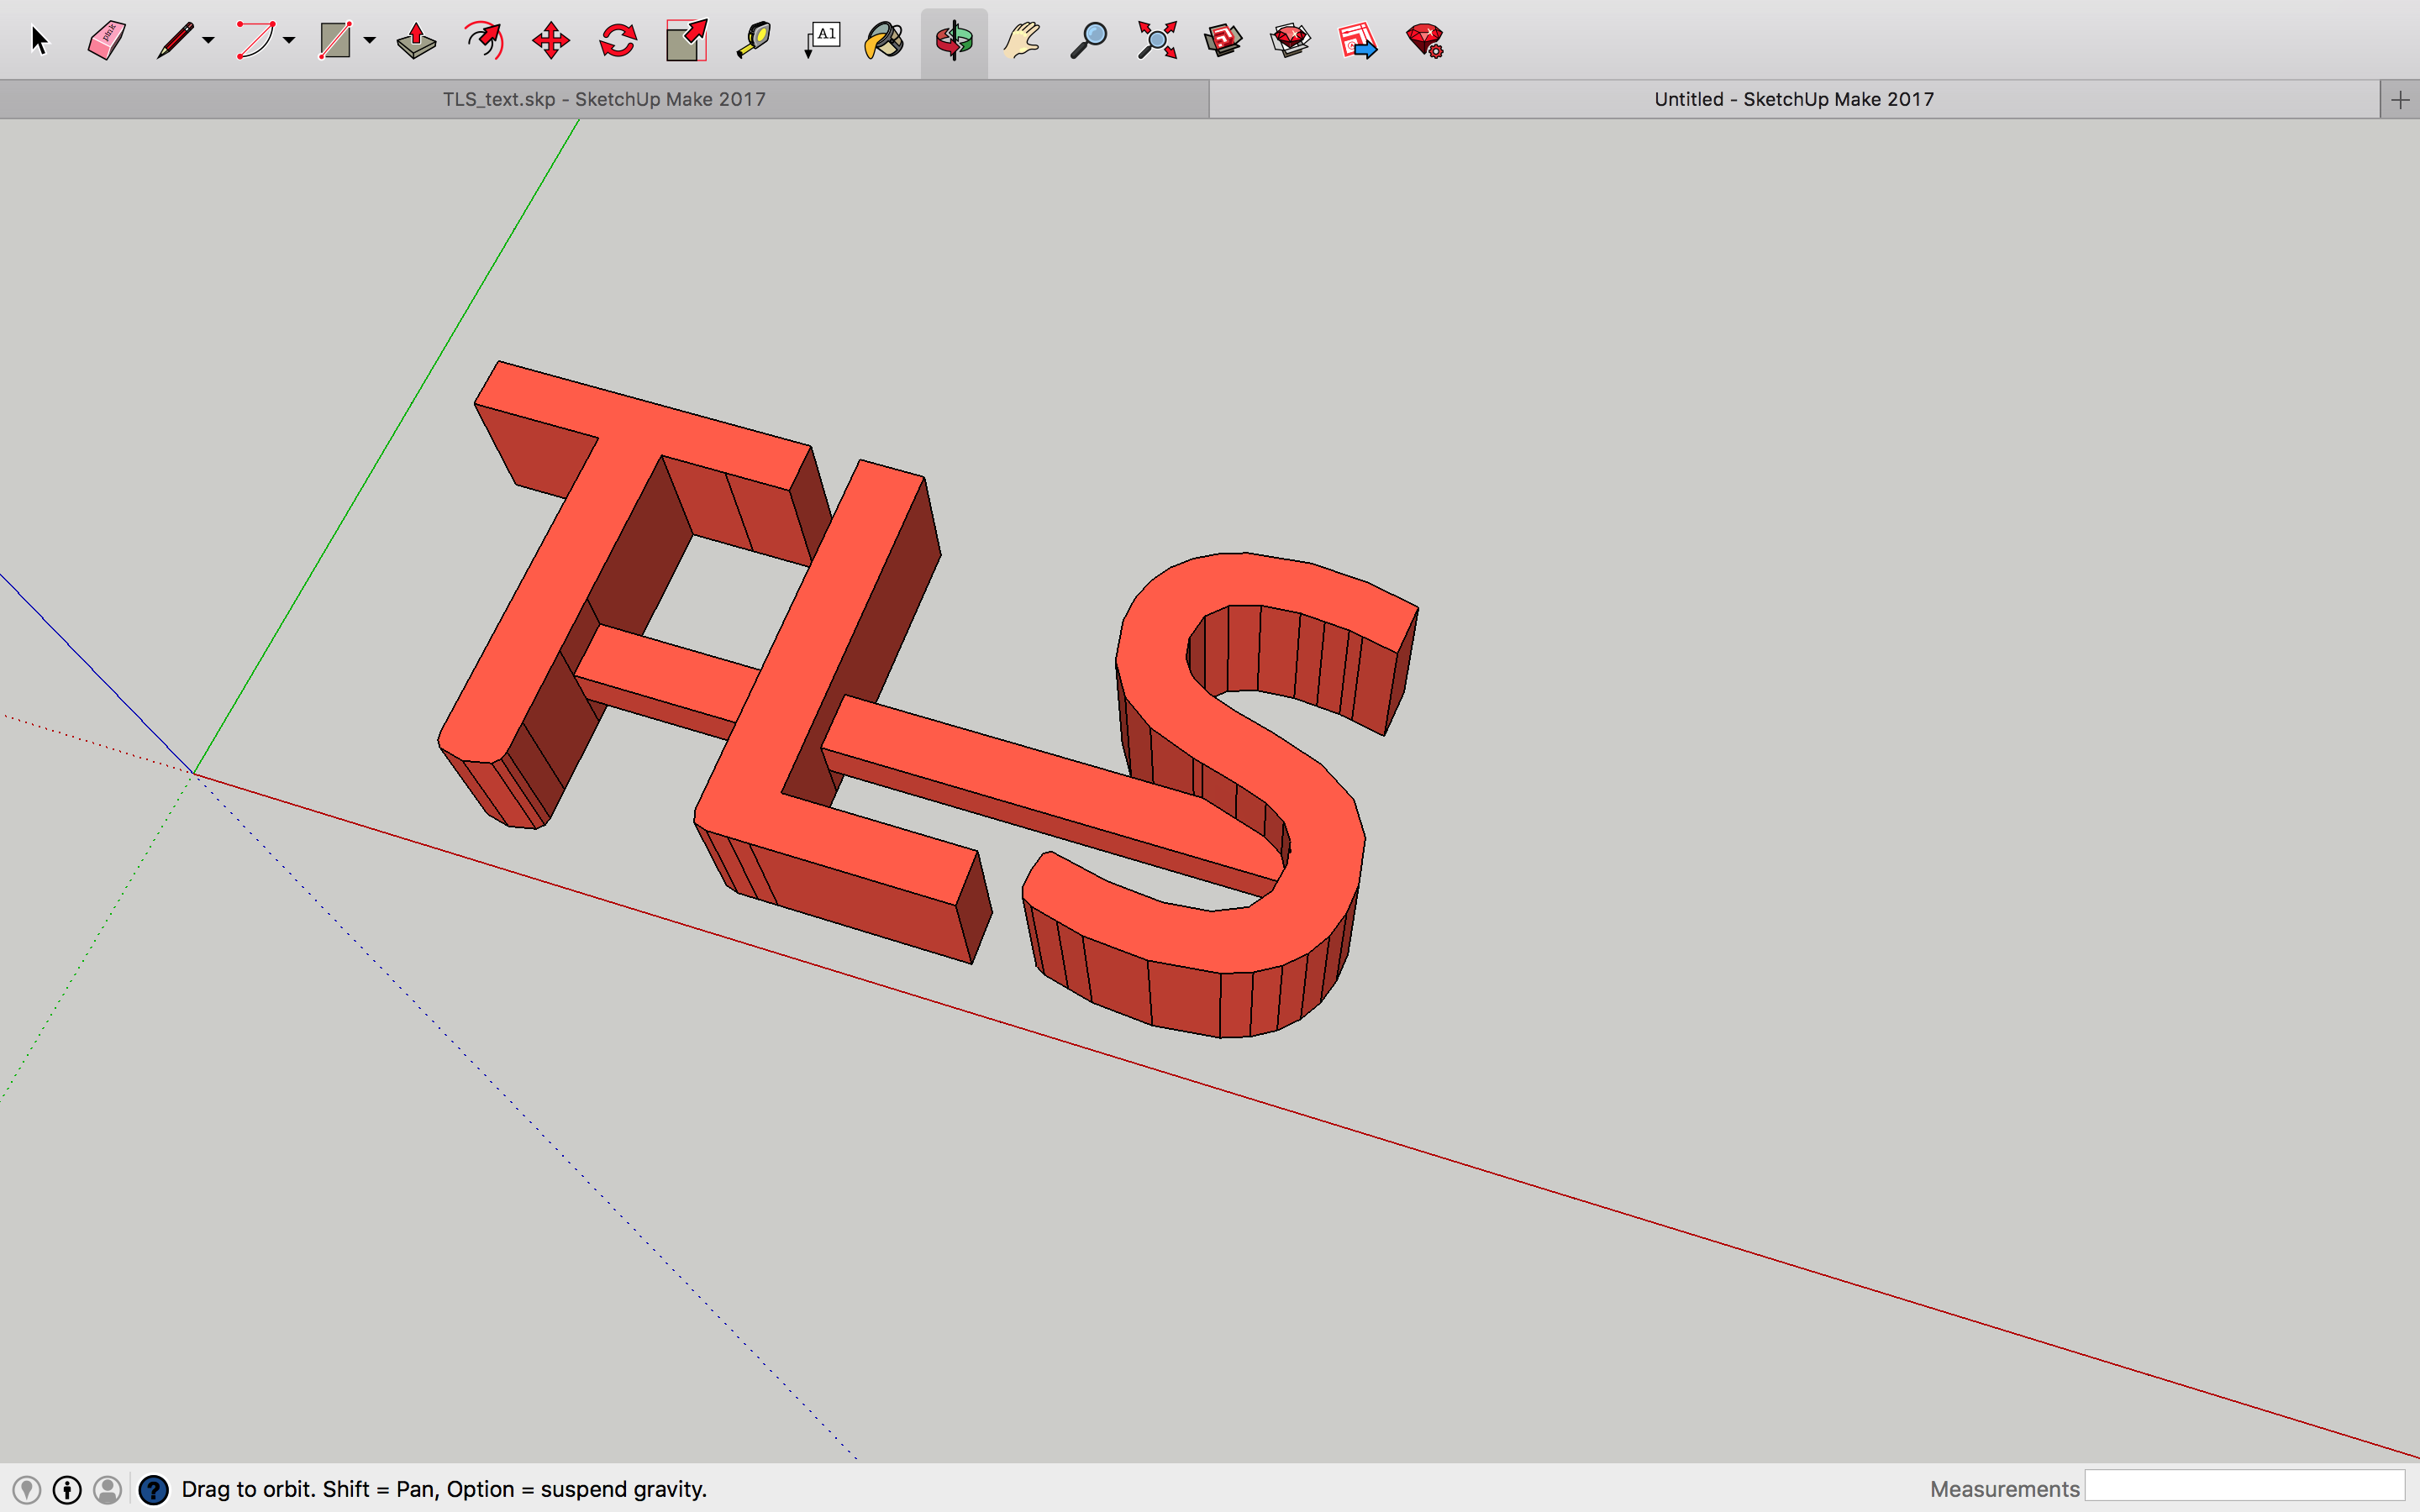 3D Letters losing shape when exported - 3D modeling software